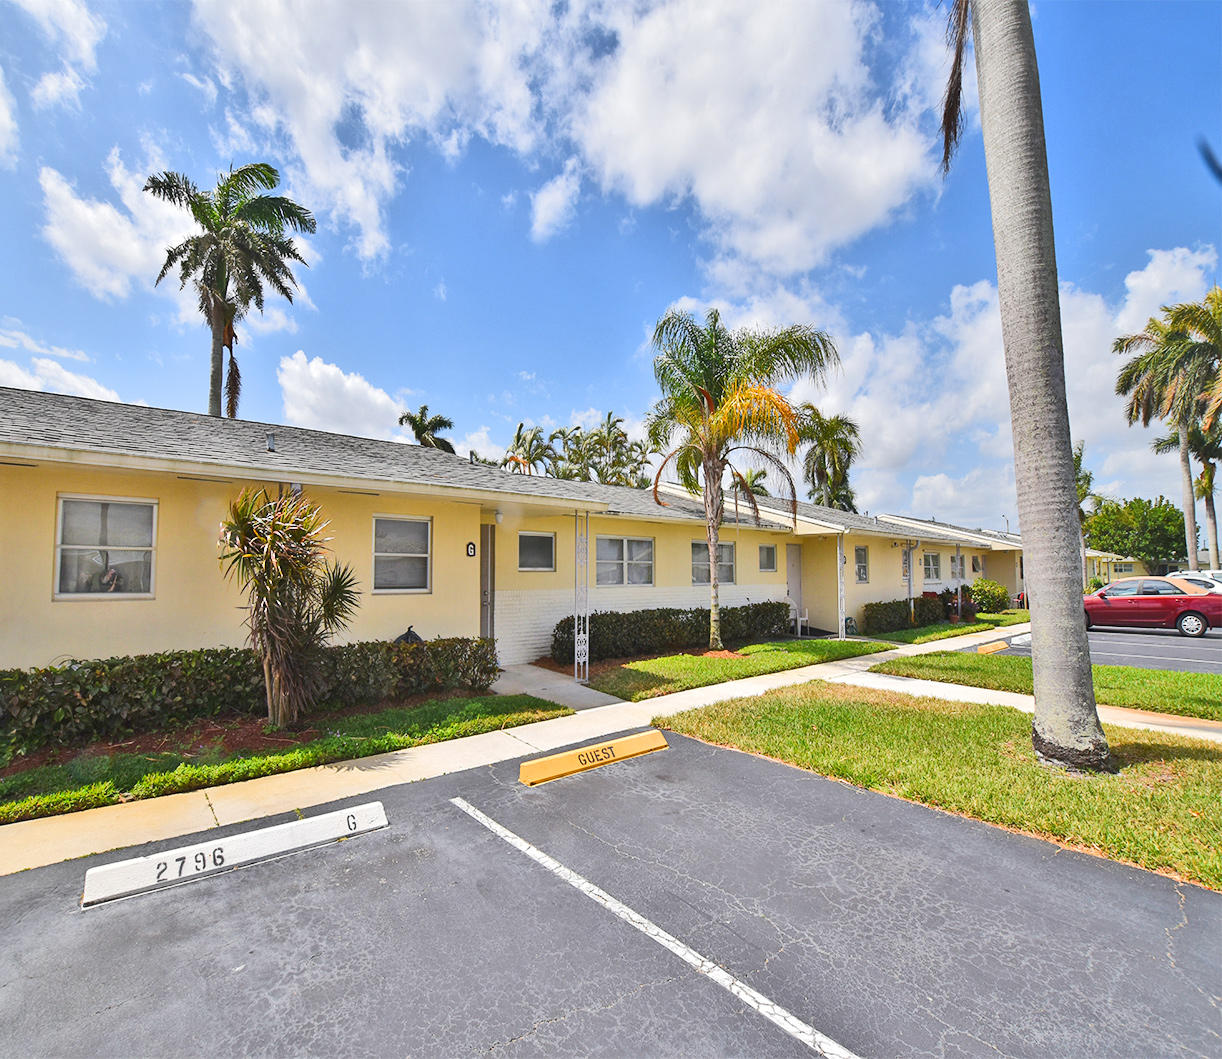 Houses In West Palm Beach For Sale: 6 Properties For Sale, West Palm Beach